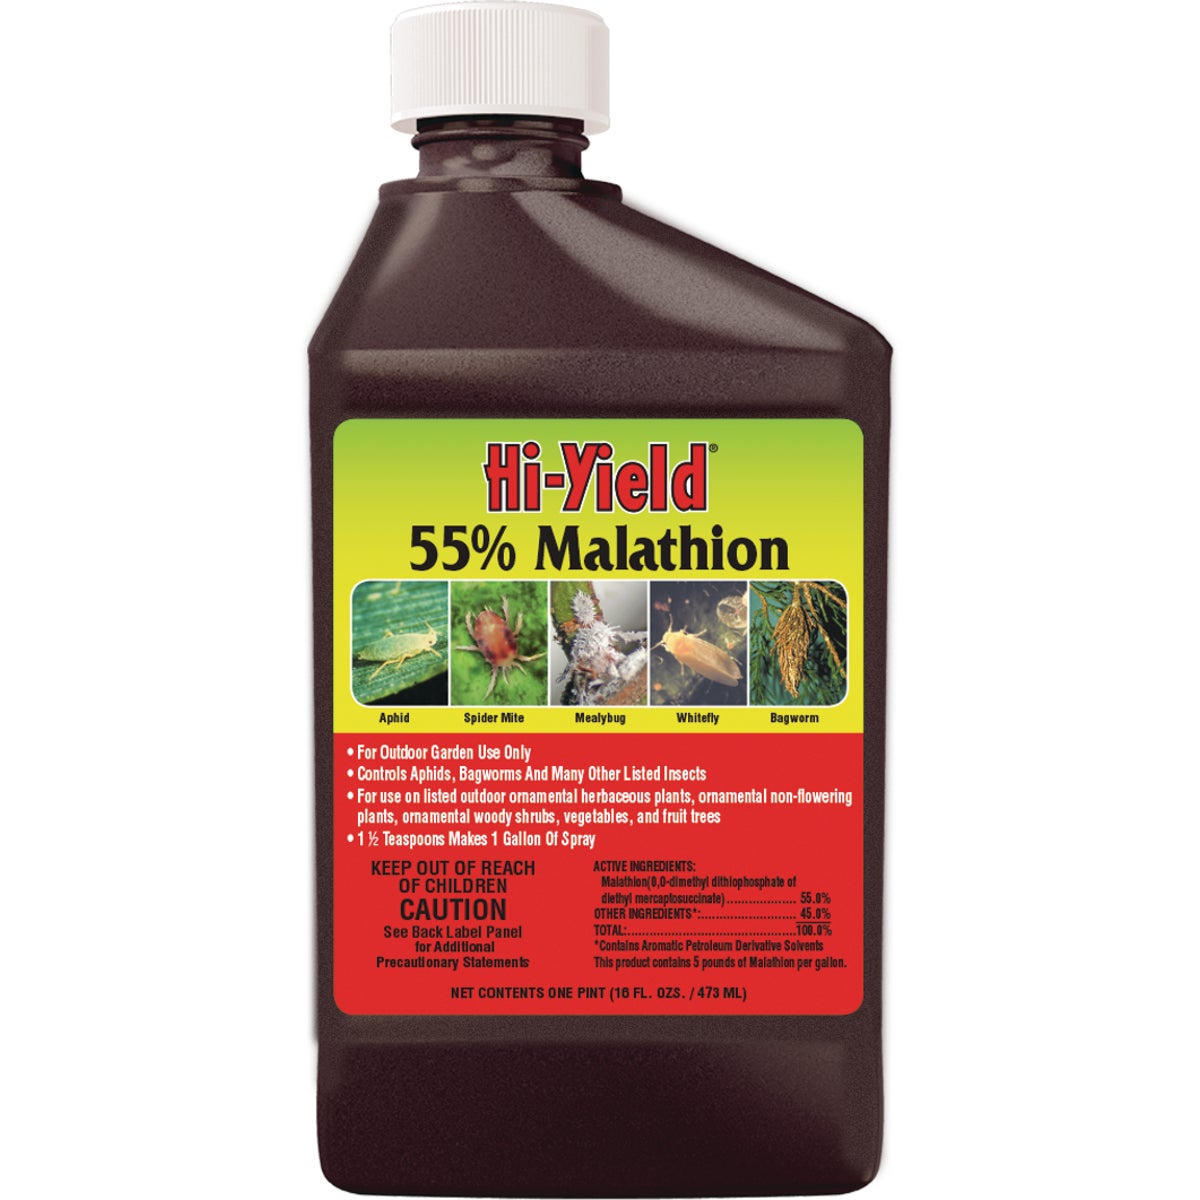 16OZ 55% MALATHION SPRAY - 32028 by Vpg Fertilome